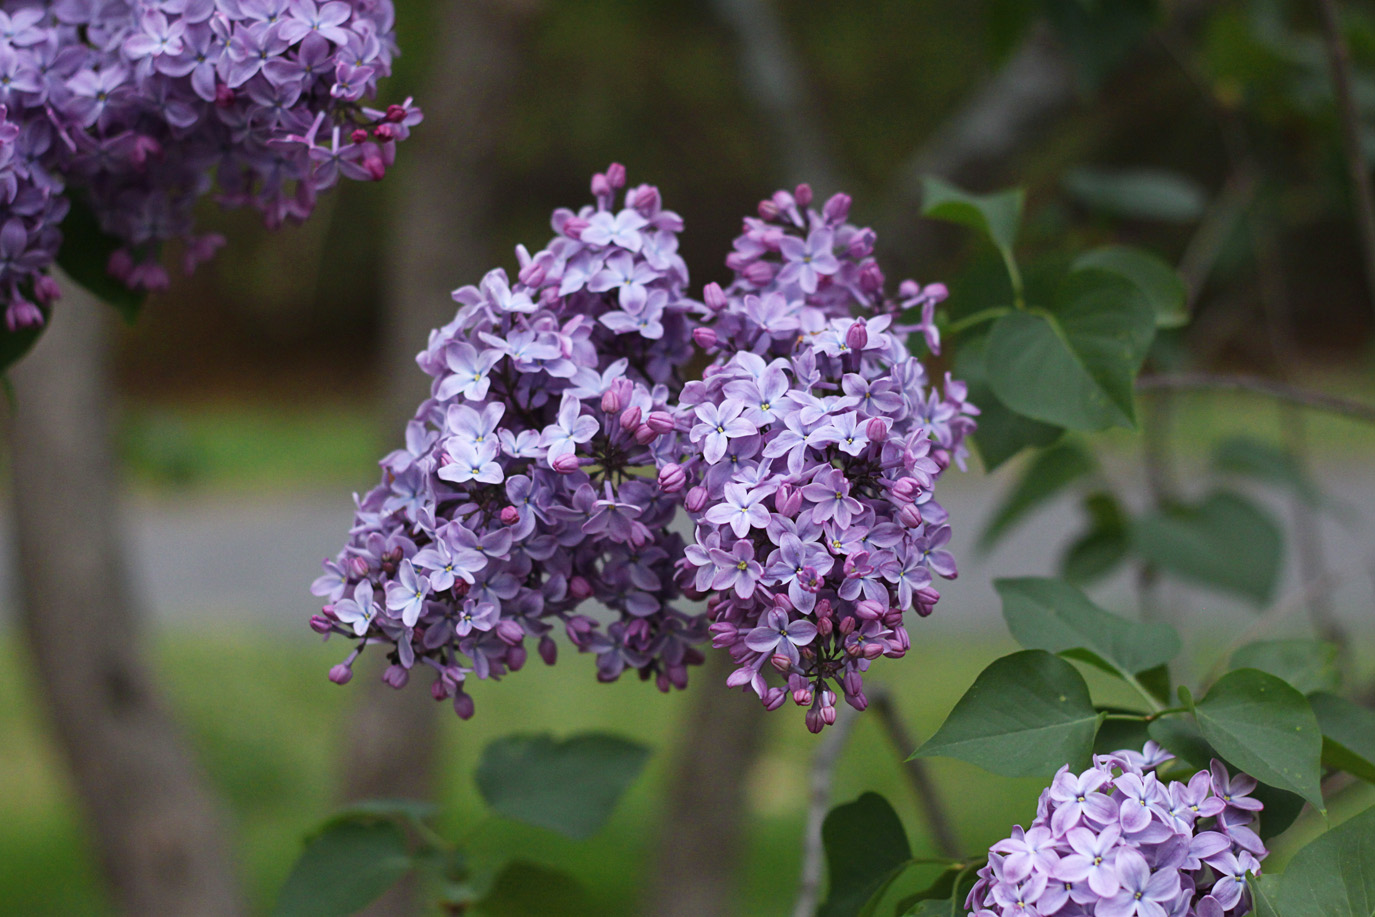 commom lilac bloom by Justine Hand for Gardenista